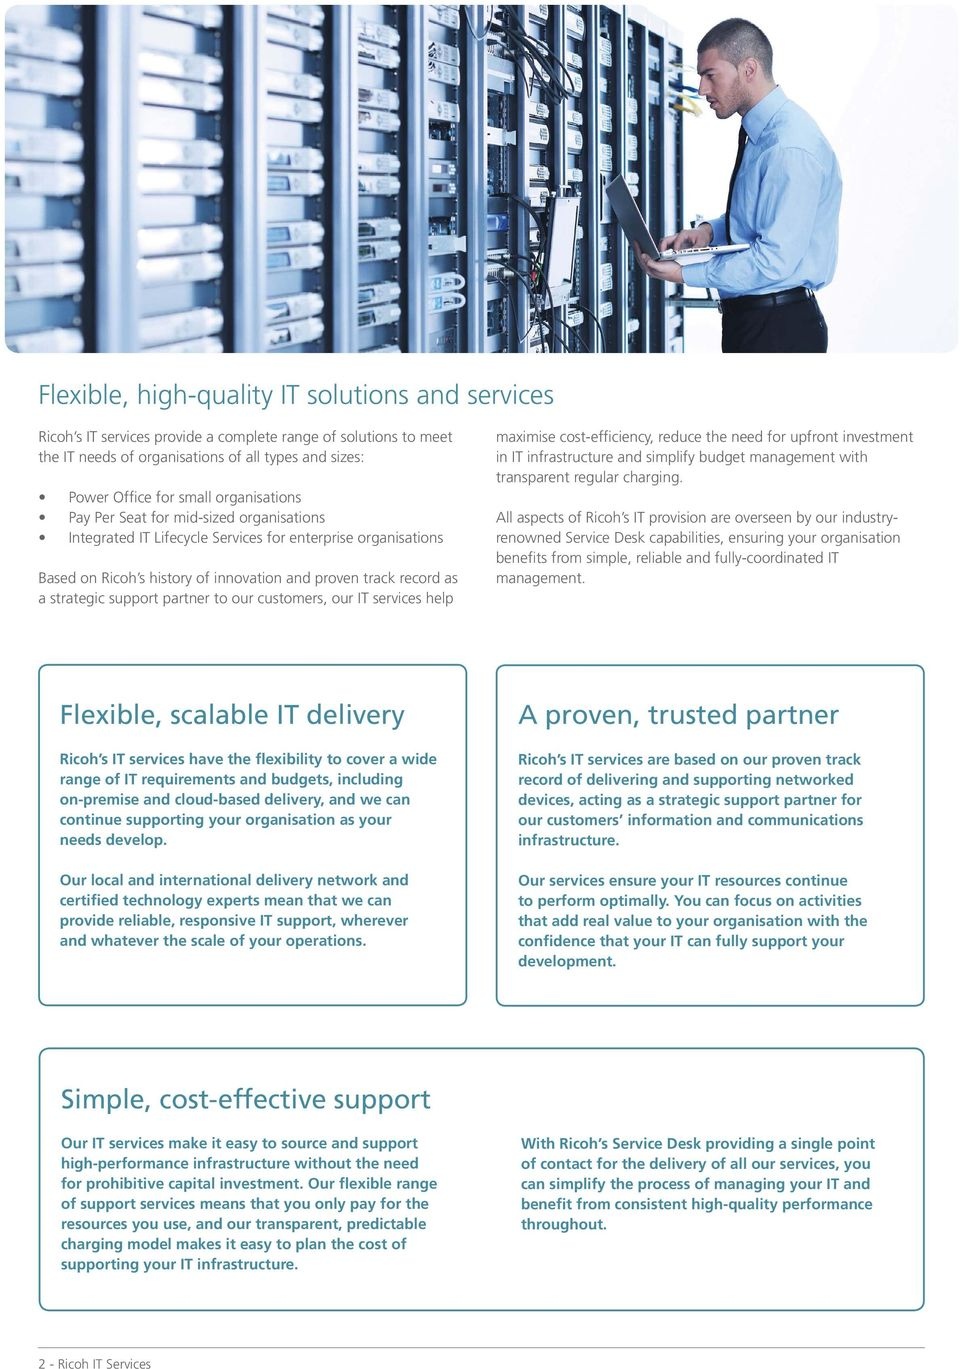 support partner to our customers, our IT services help maximise cost-efficiency, reduce the need for upfront investment in IT infrastructure and simplify budget management with transparent regular